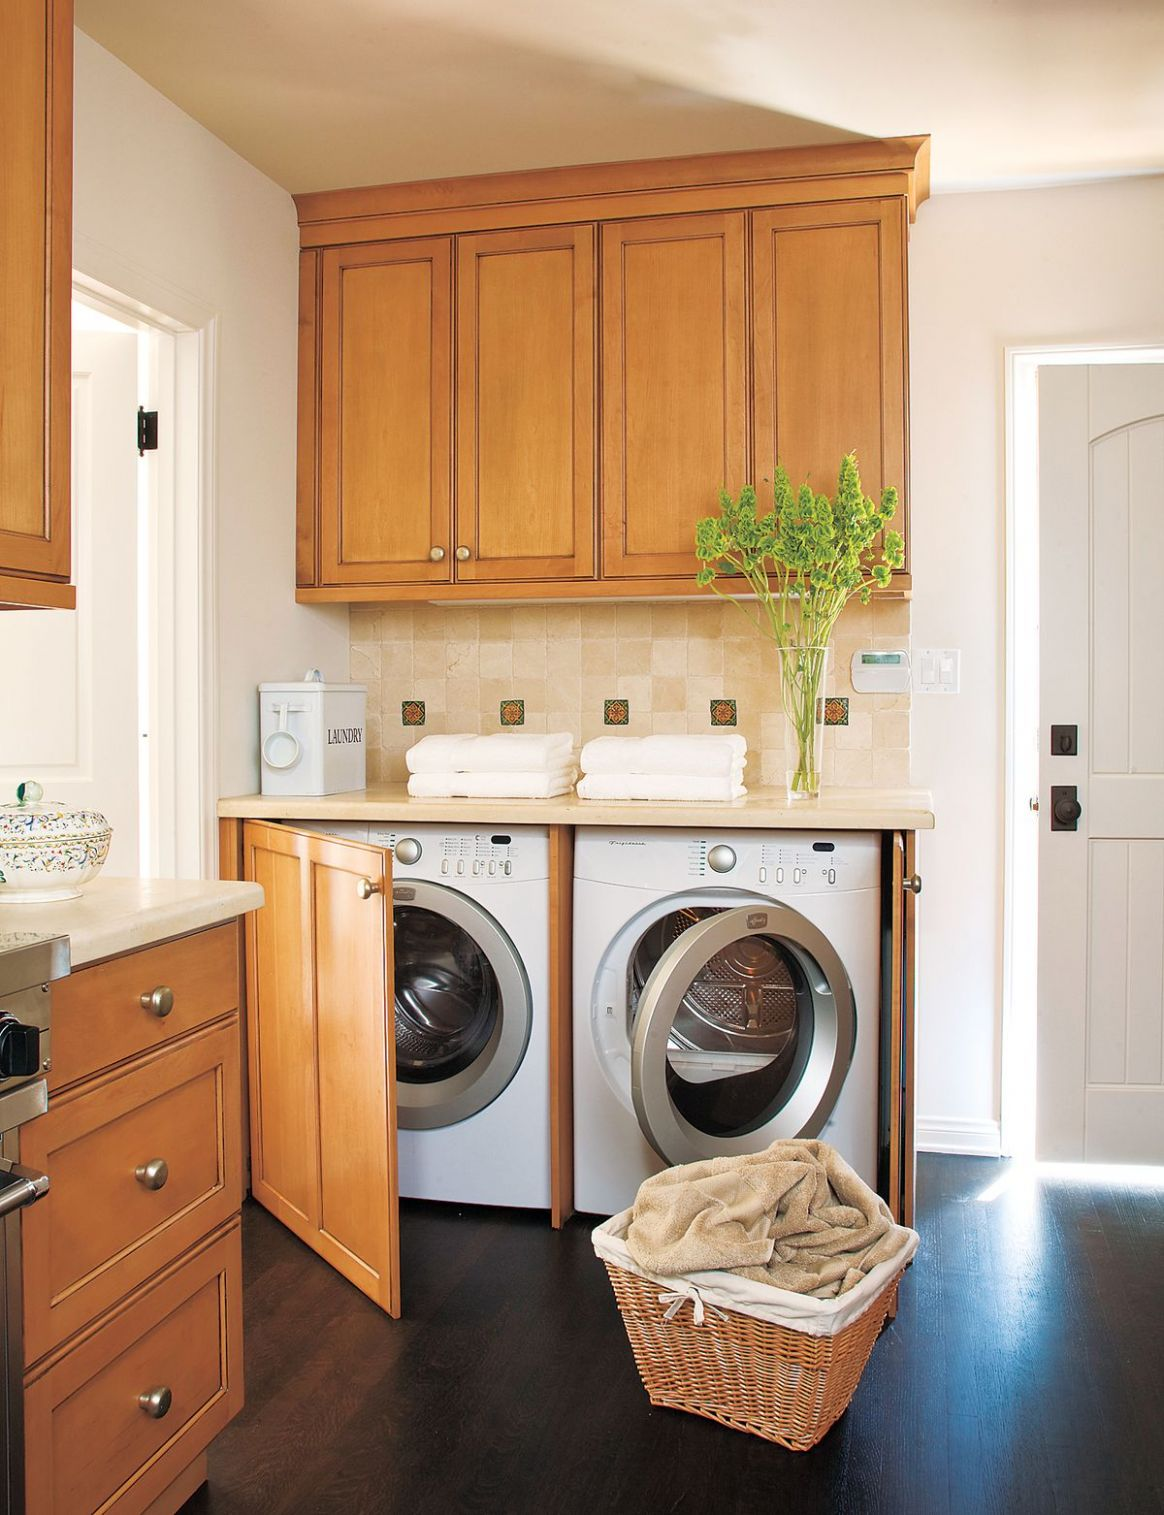 9 Ideas for a Fully Loaded Laundry Room - This Old House - laundry room ideas this old house